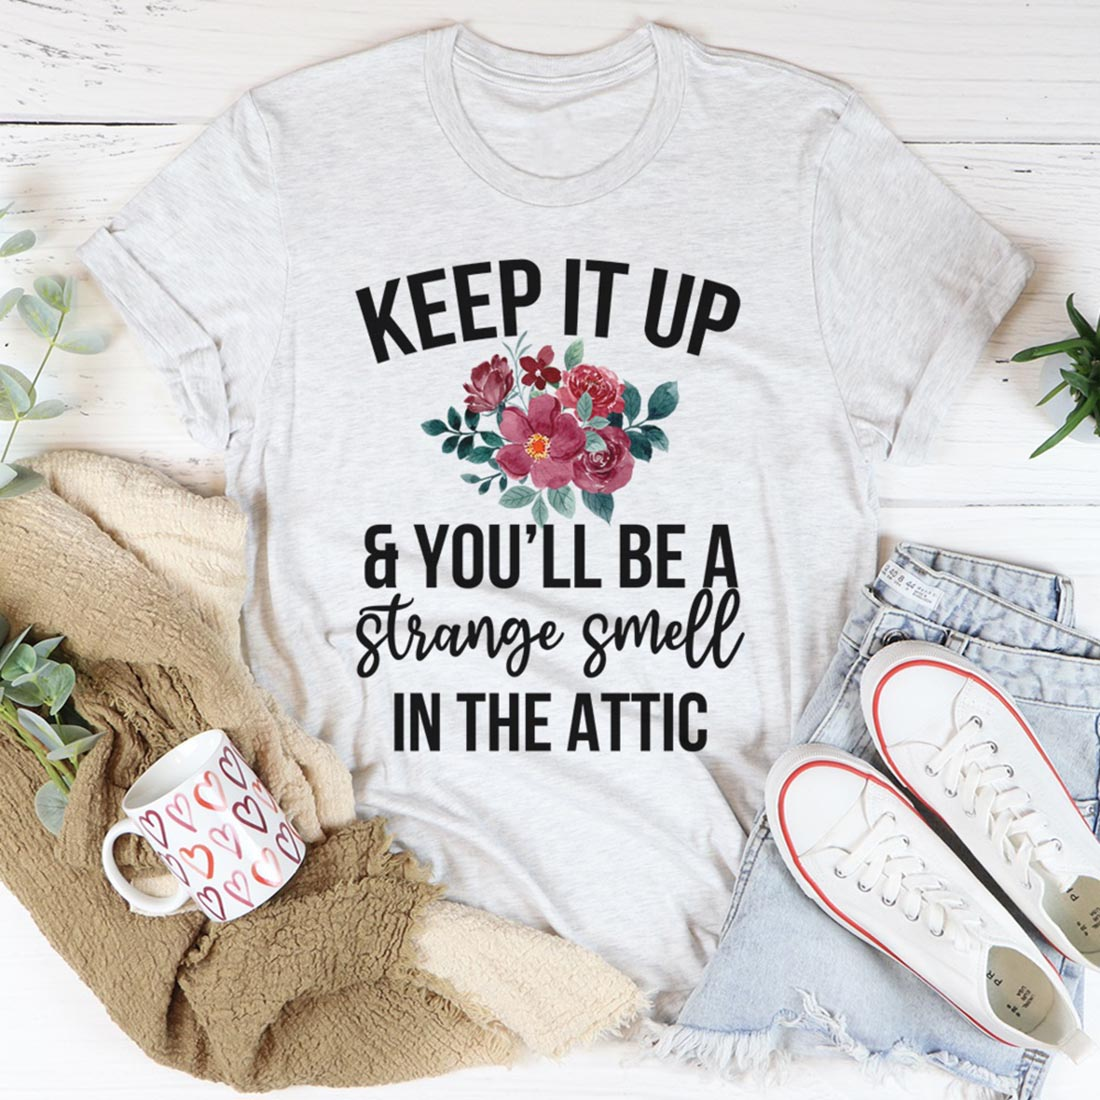 Keep it up and you'll be the strange smell in the attic shirt